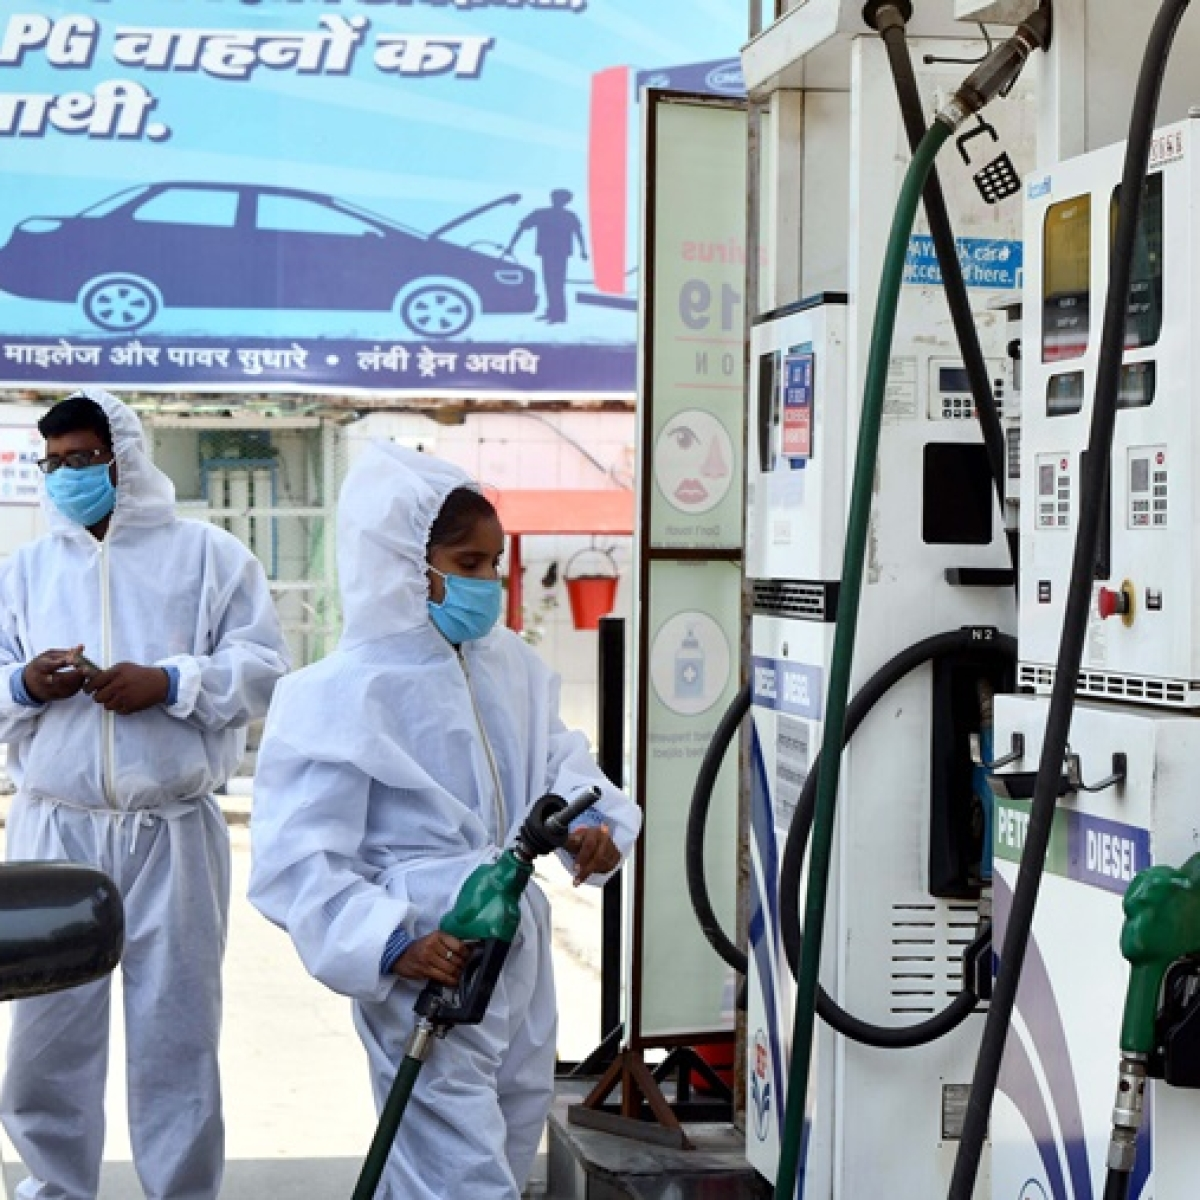 Govt to gain Rs 1.6 lakh cr this fiscal from record excise duty hike on petrol, diesel